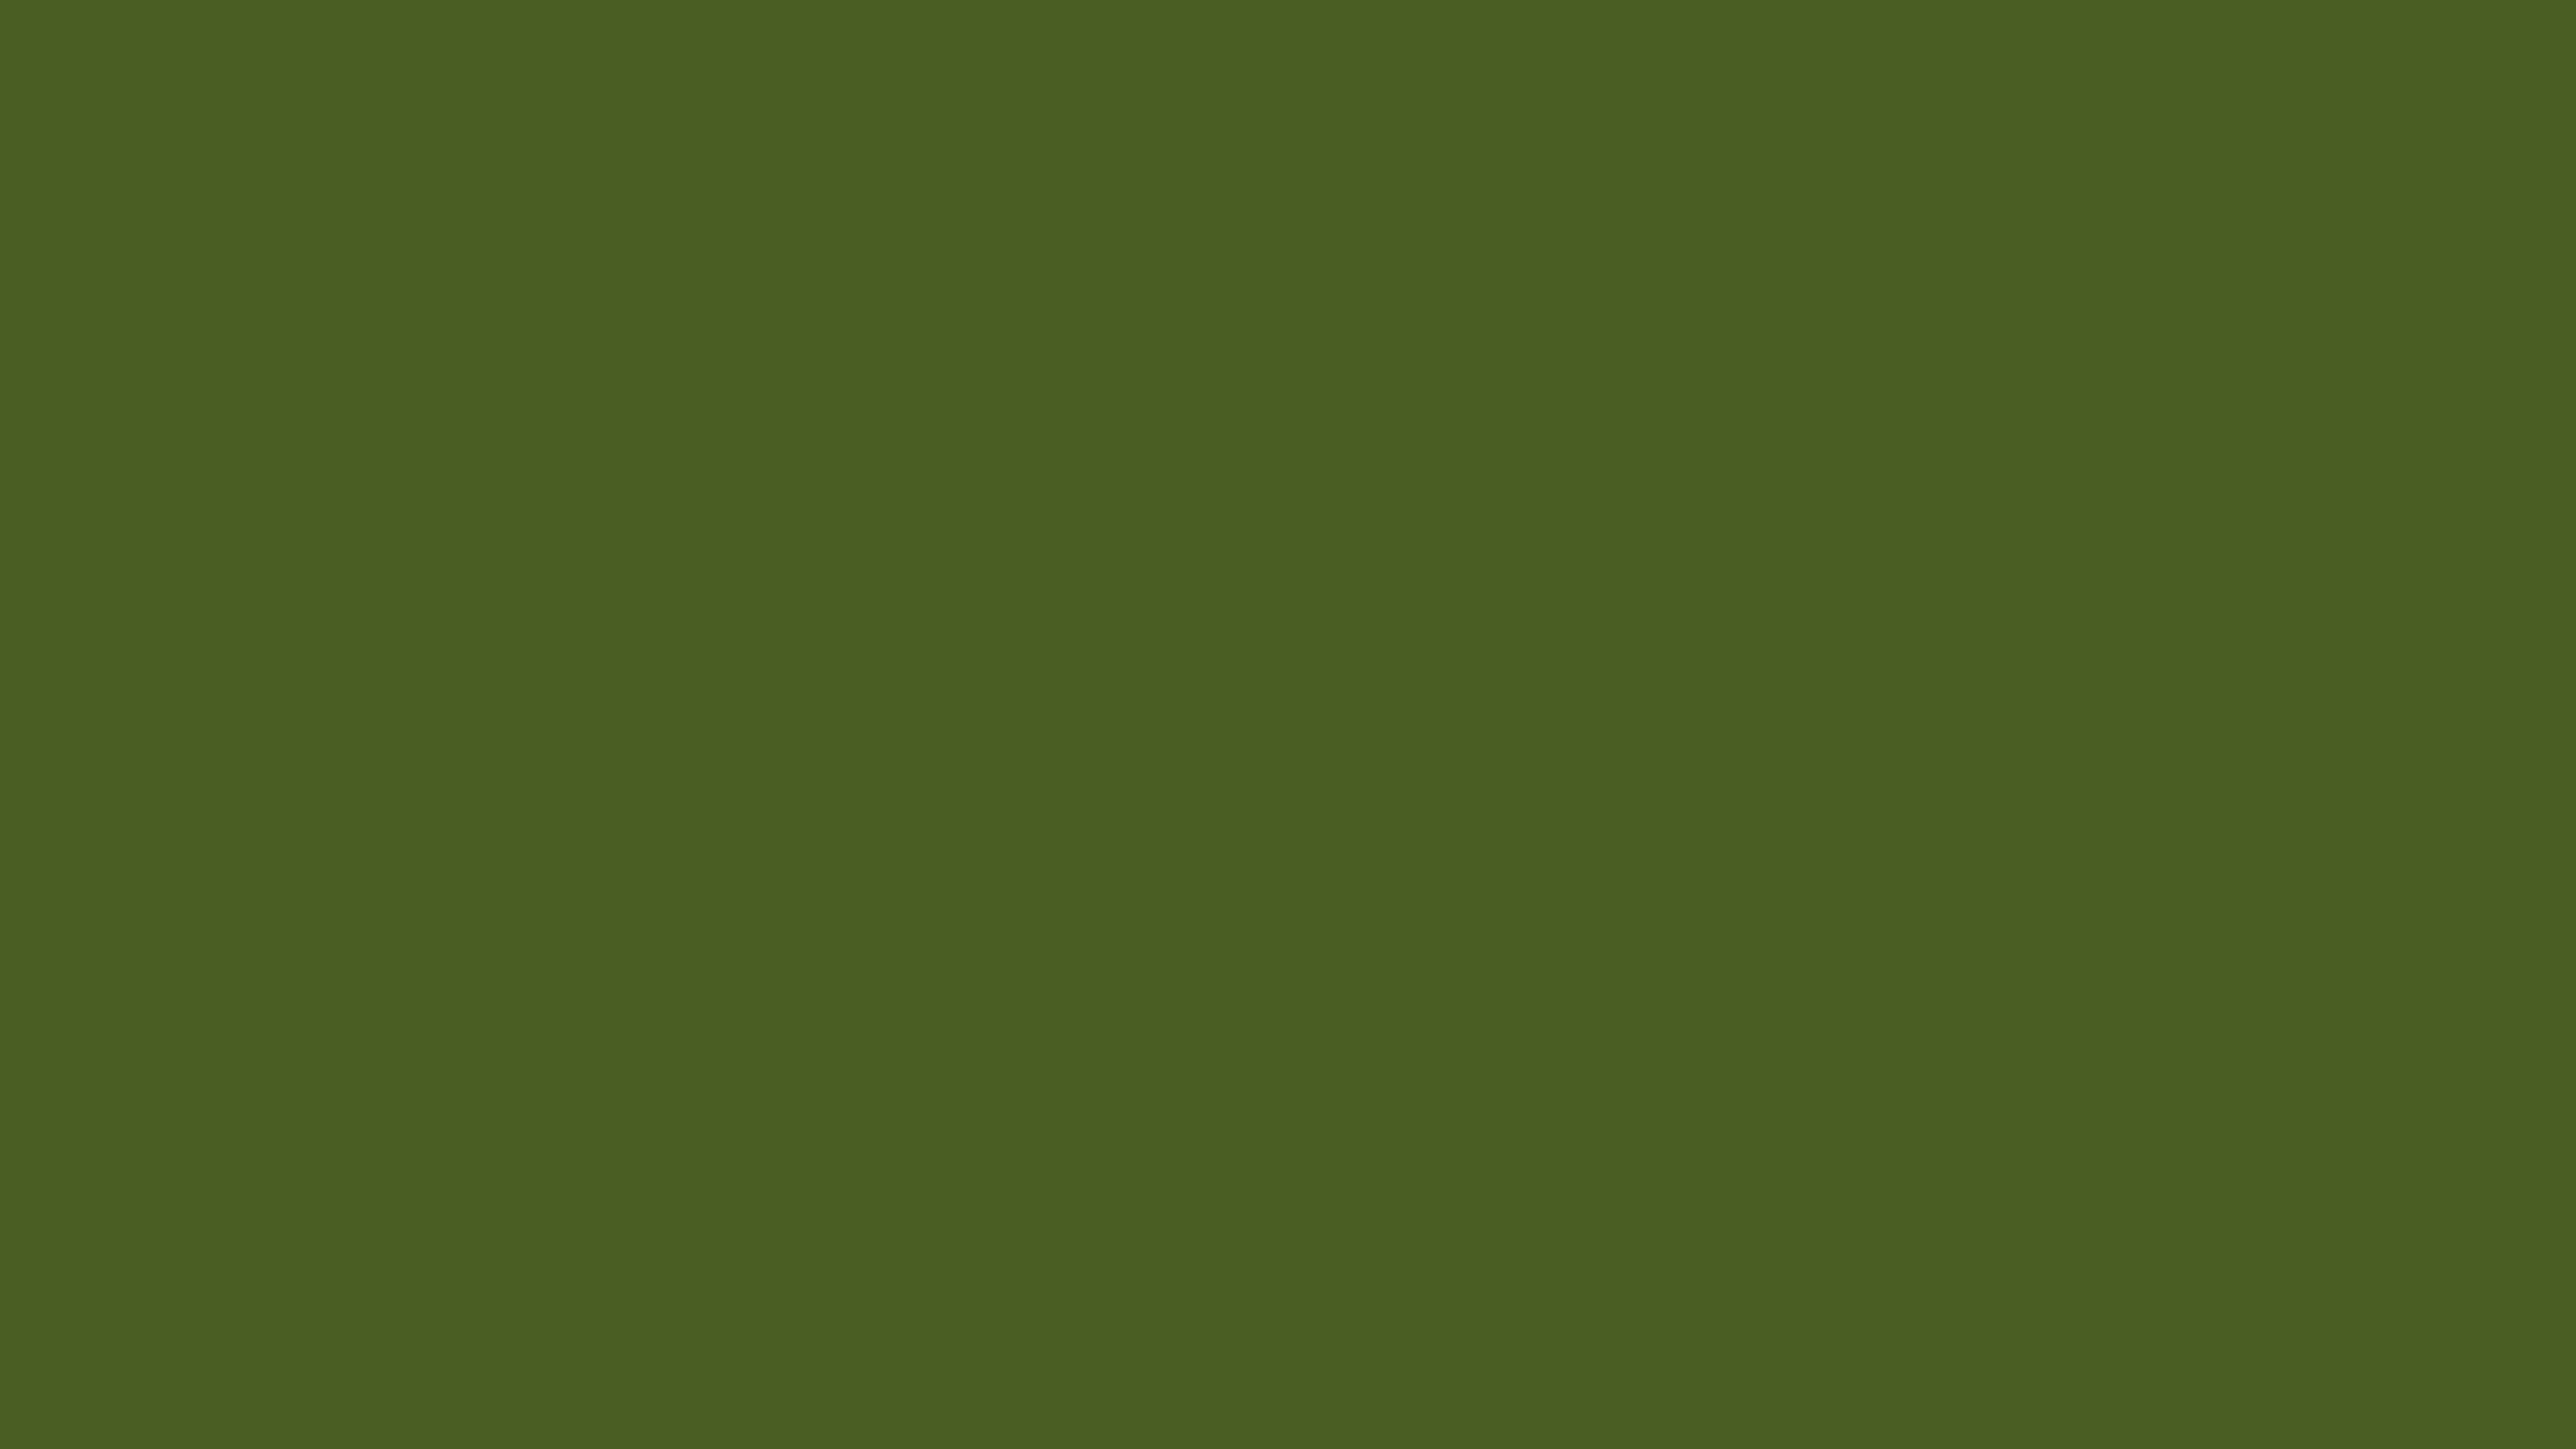 3840x2160 Dark Moss Green Solid Color Background